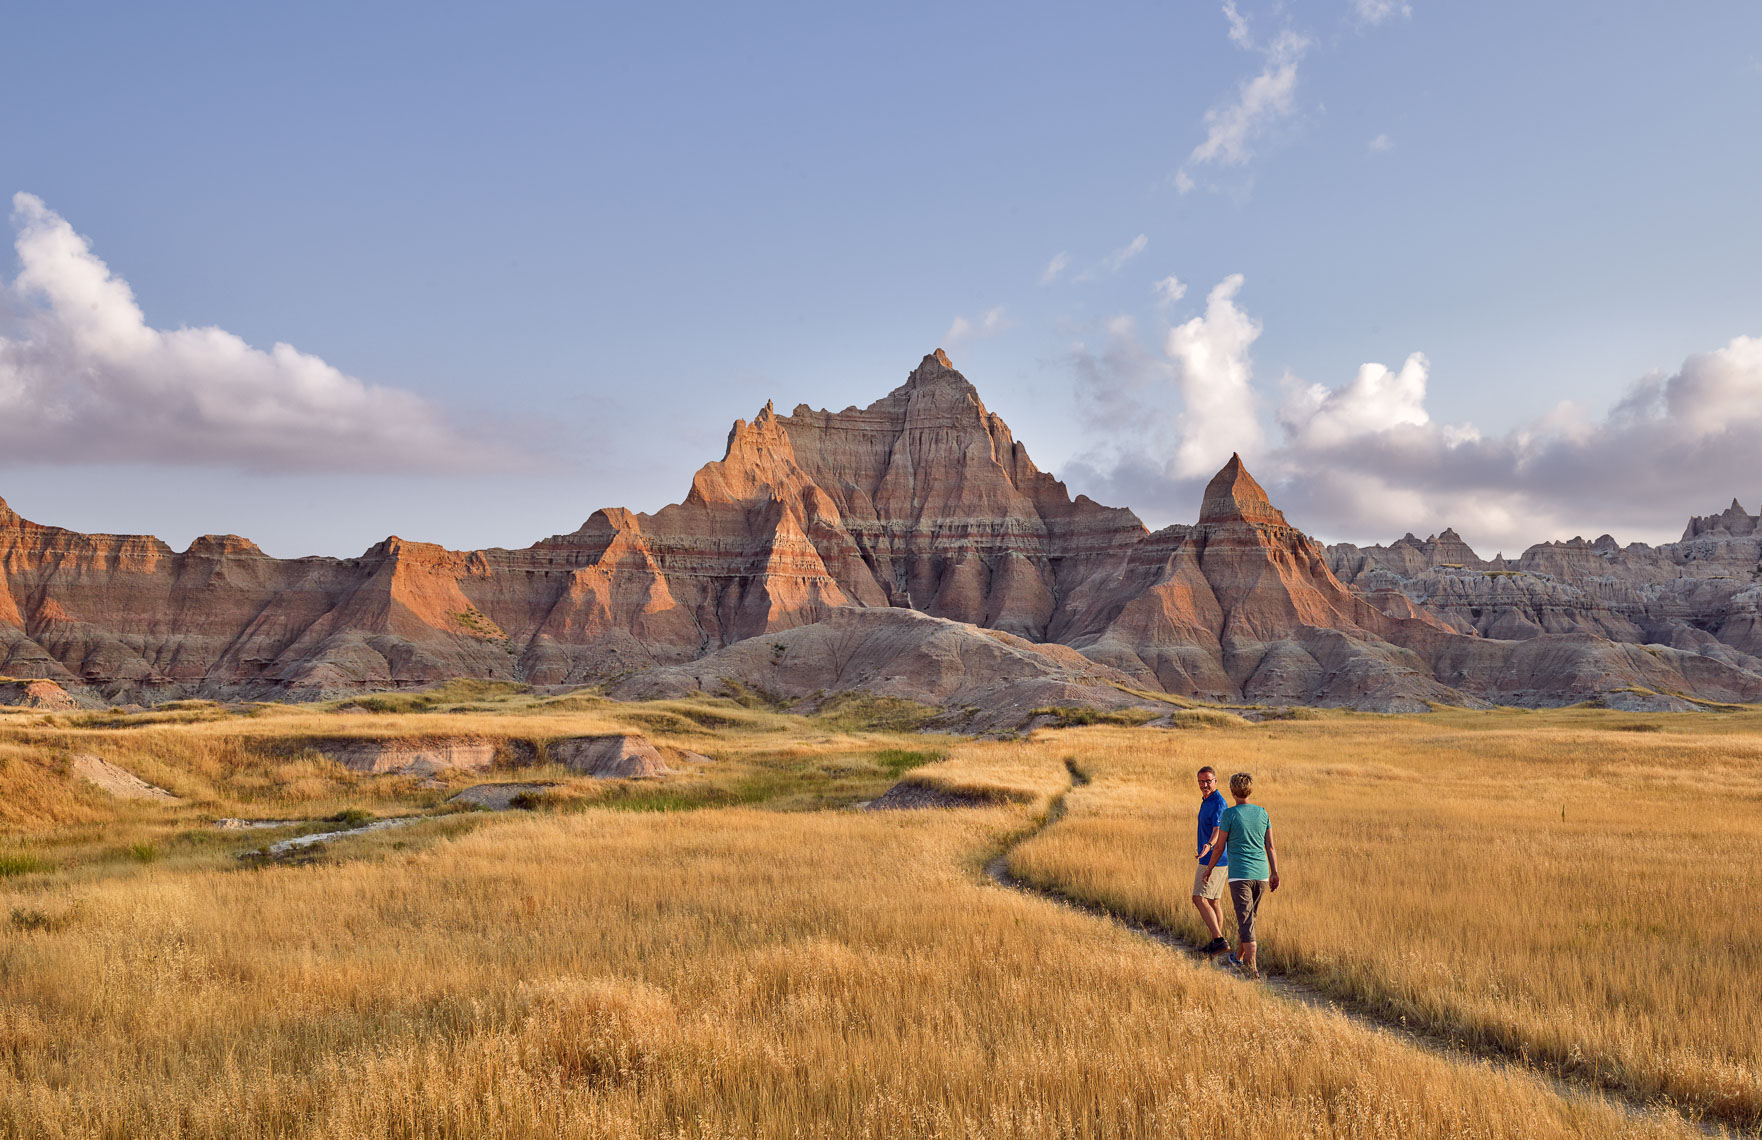 A couple hike along a trail in the landscape of the Badlands